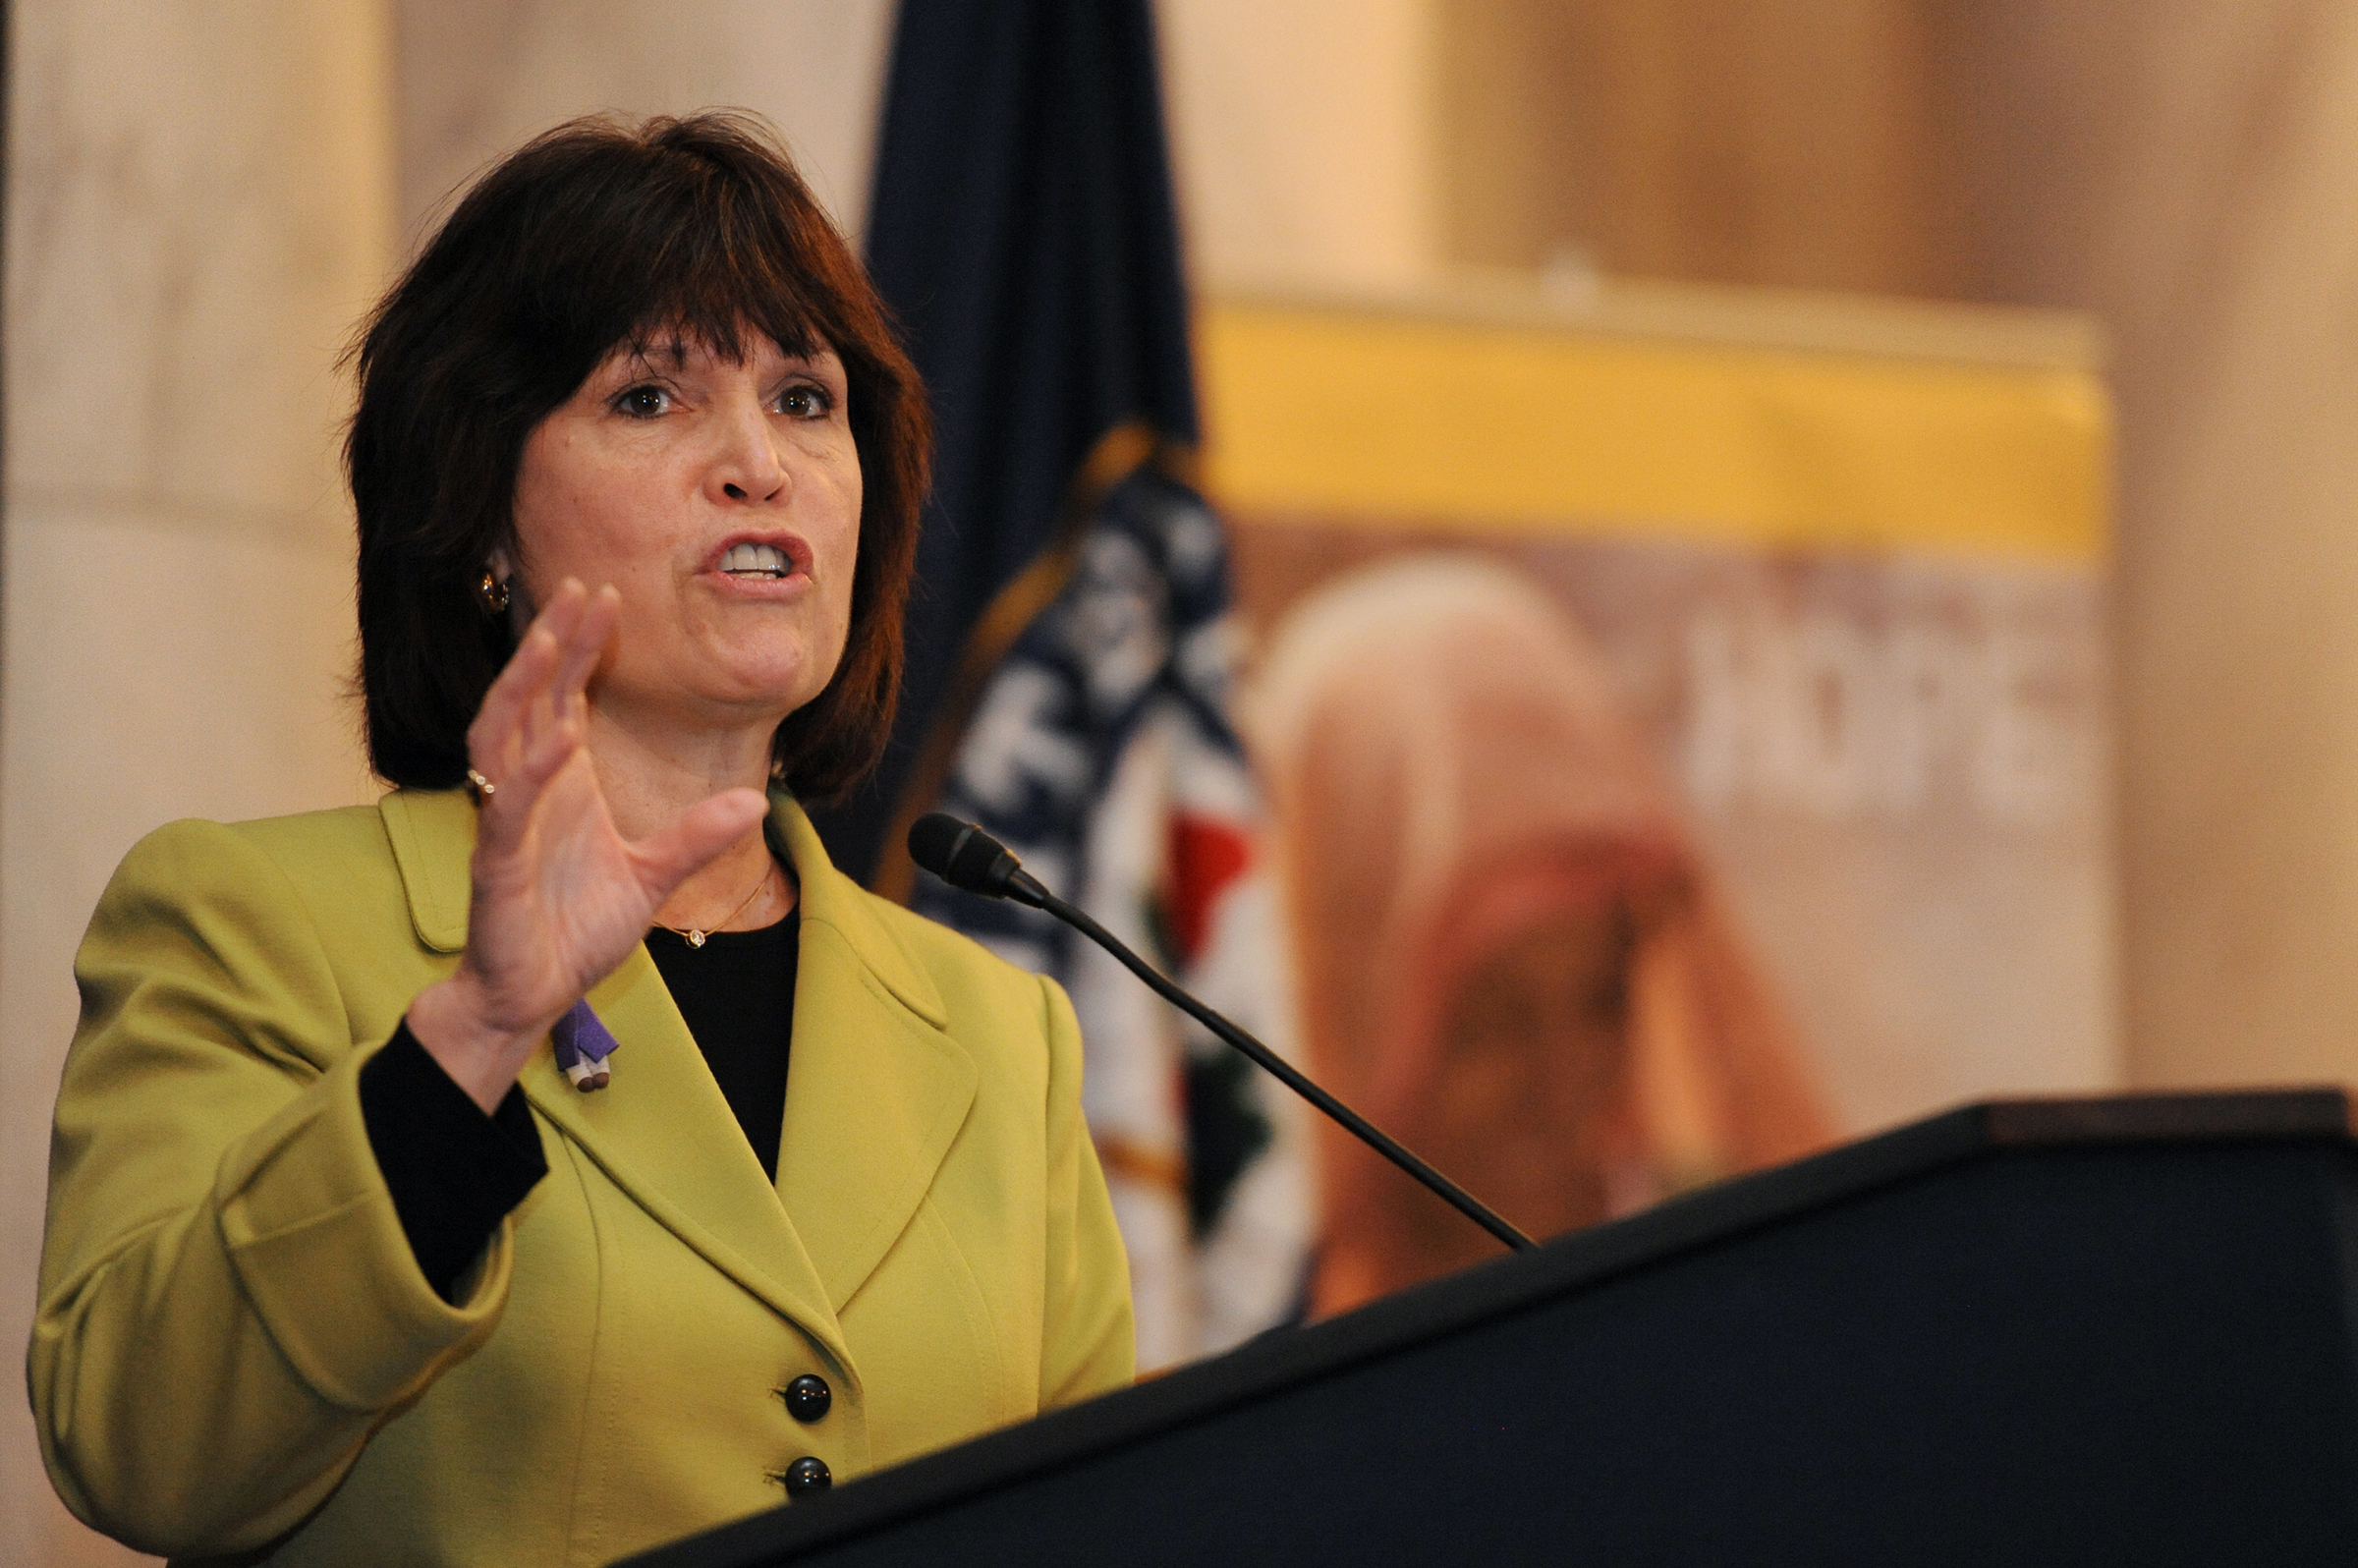 US Congresswoman Asks For Halt On Military Aid To Israel